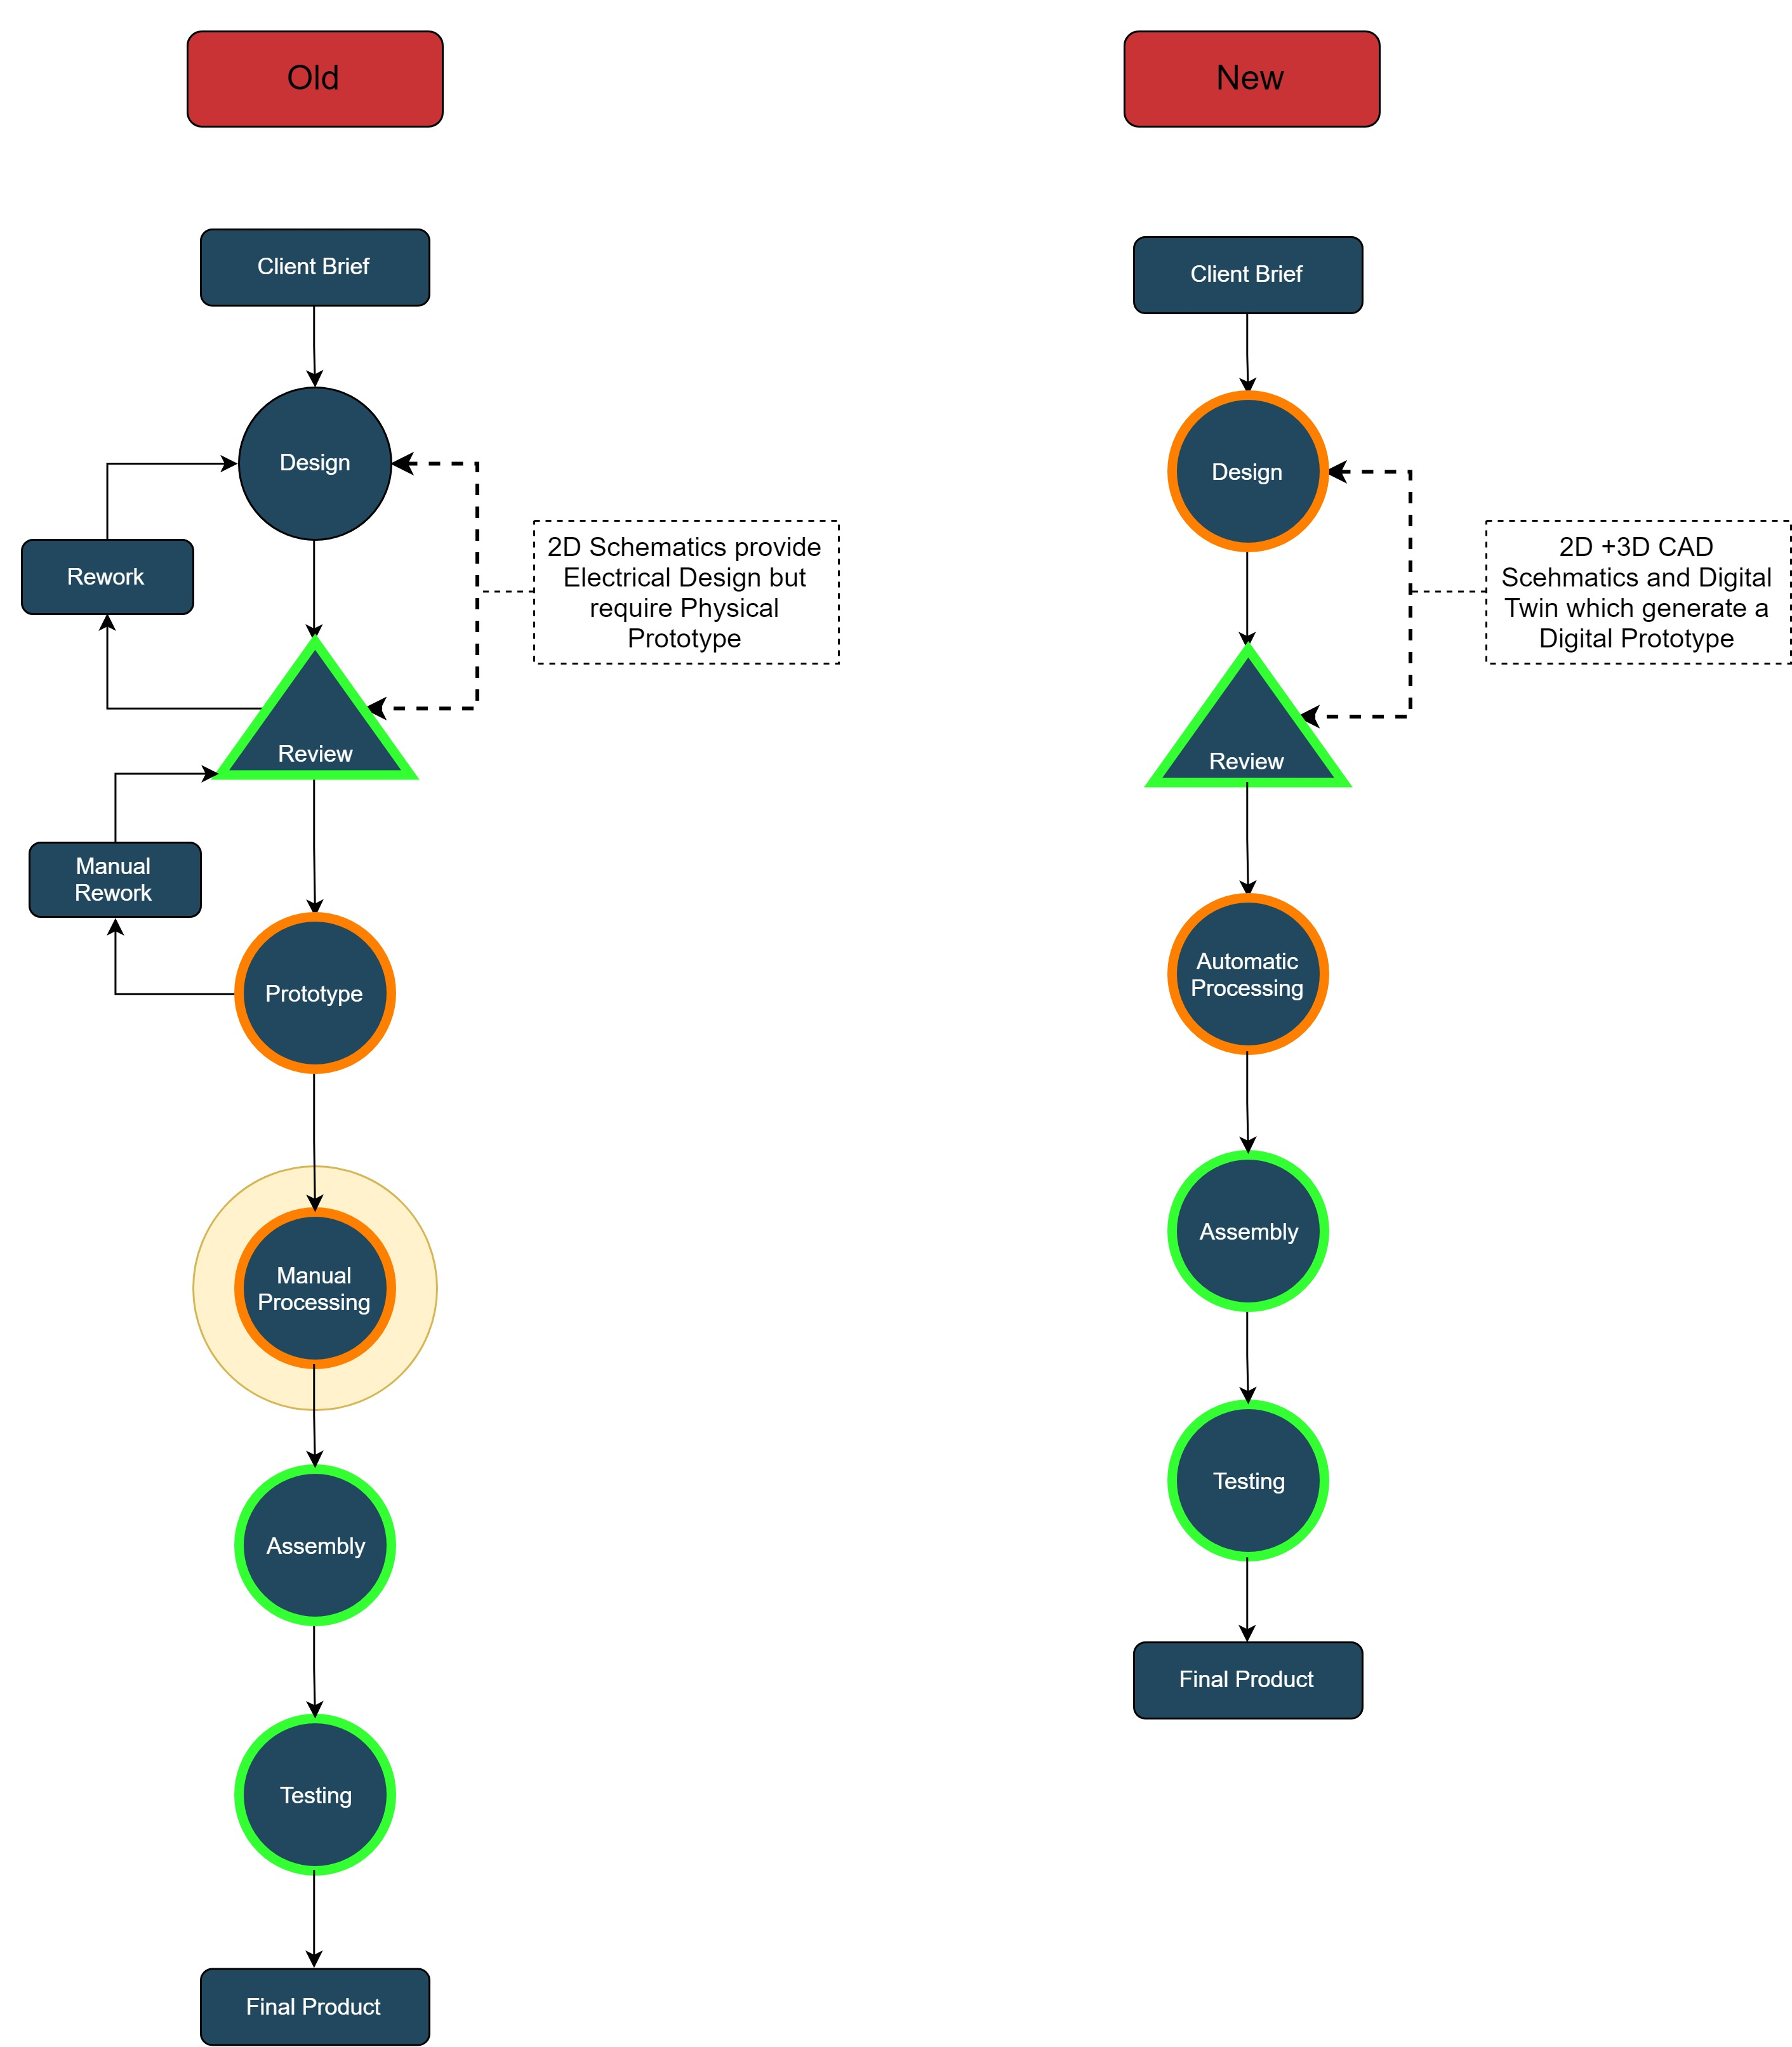 Workflow for I4.0